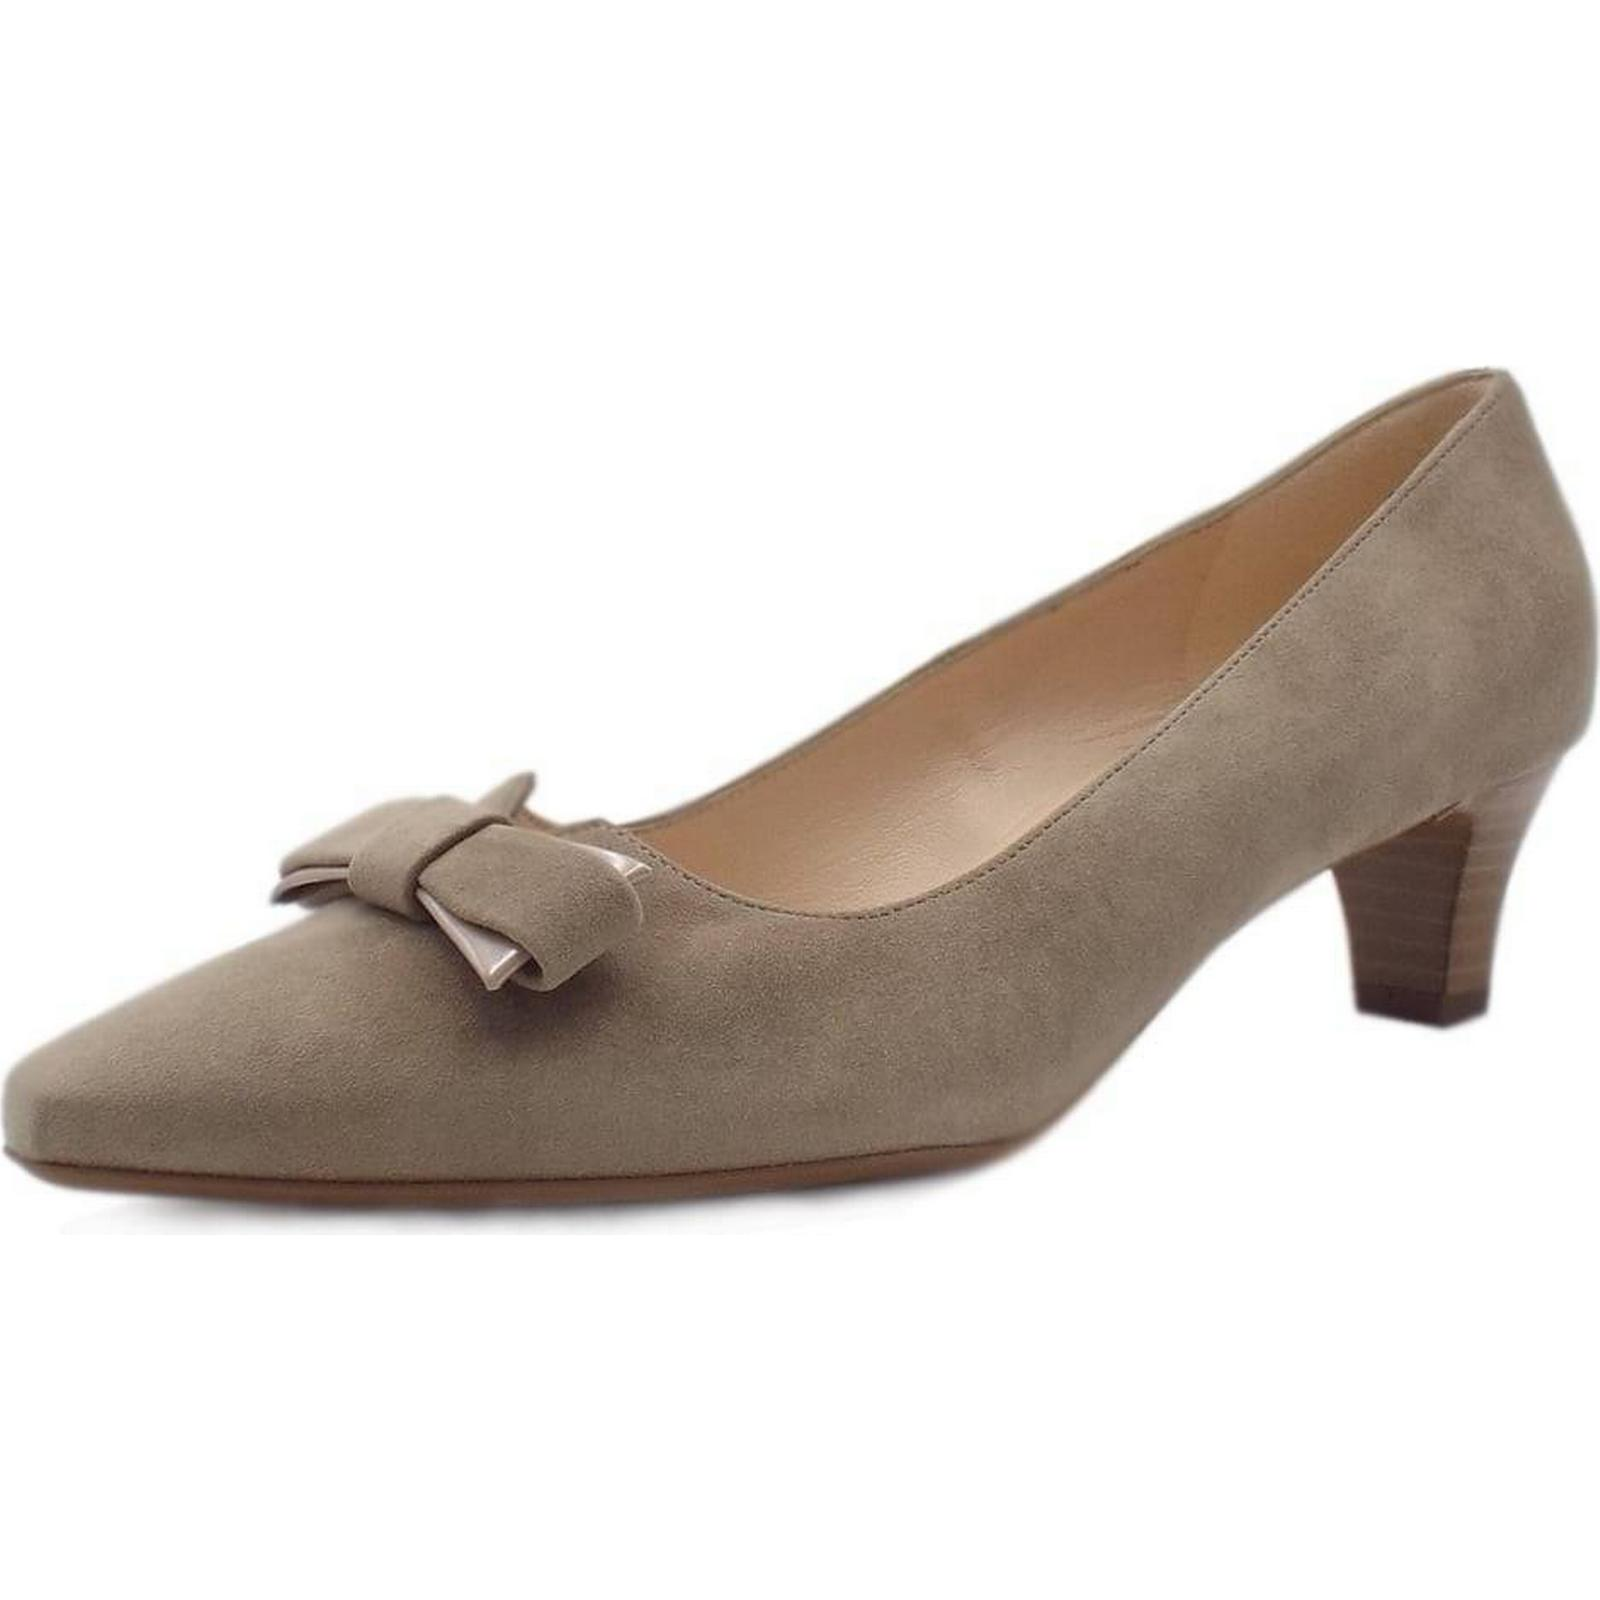 Peter Kaiser SARIS SHOES PETER KAISER 45MM LADIES SHOES SARIS Colour: TAUPE SUEDE, 9b4939